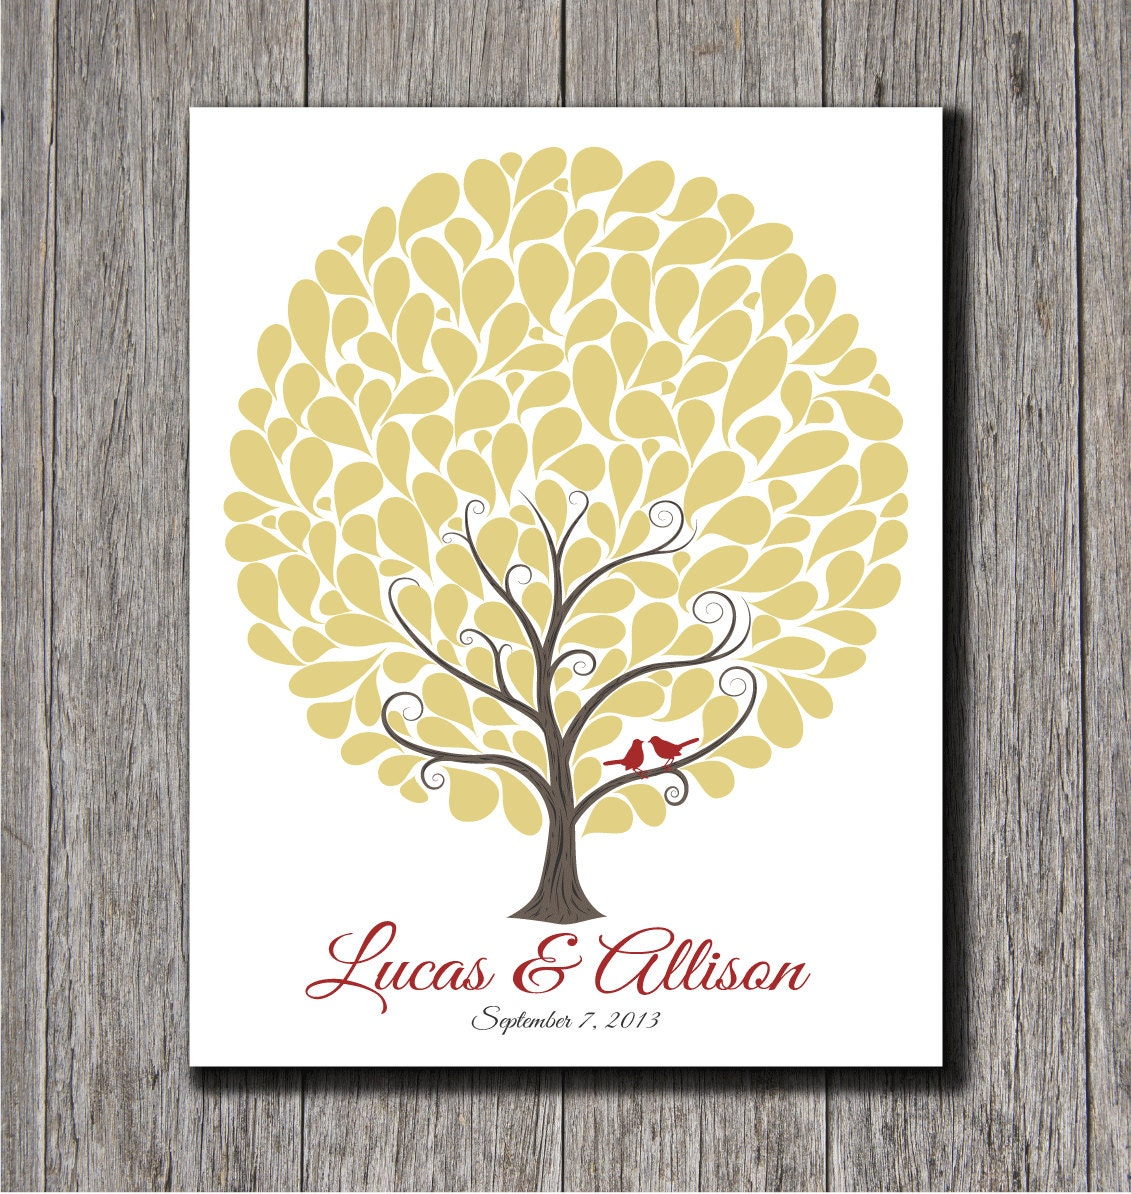 Wedding Guest Signing Tree: Wedding Guest Tree With 145 Signature Shapes 16x20 Wedding